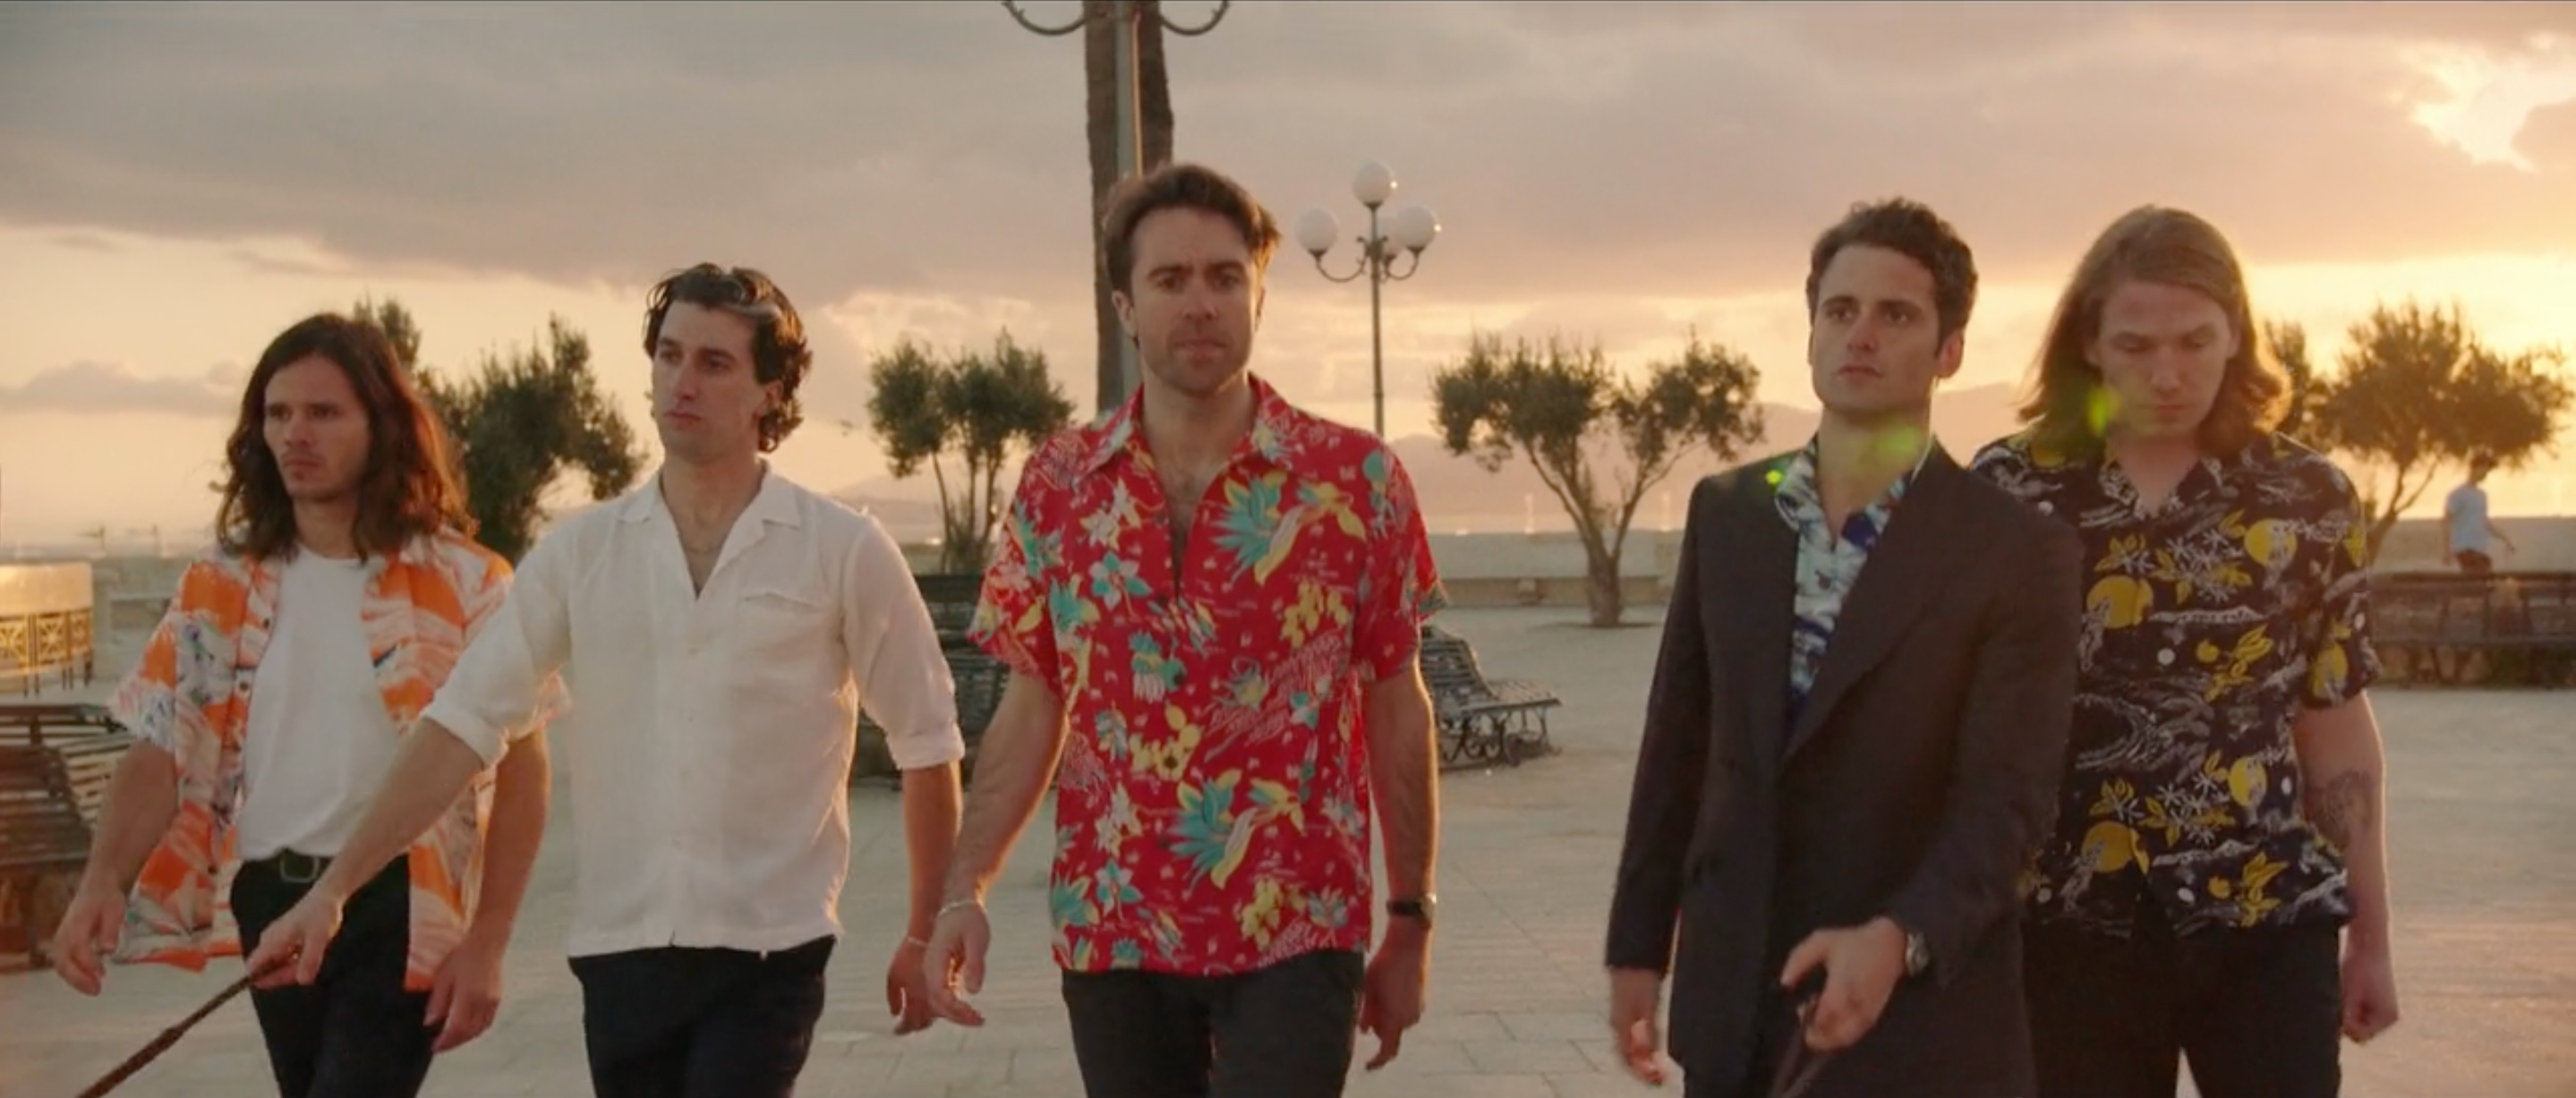 Vaccines - I Can't Quit directed by Daniel Brereton